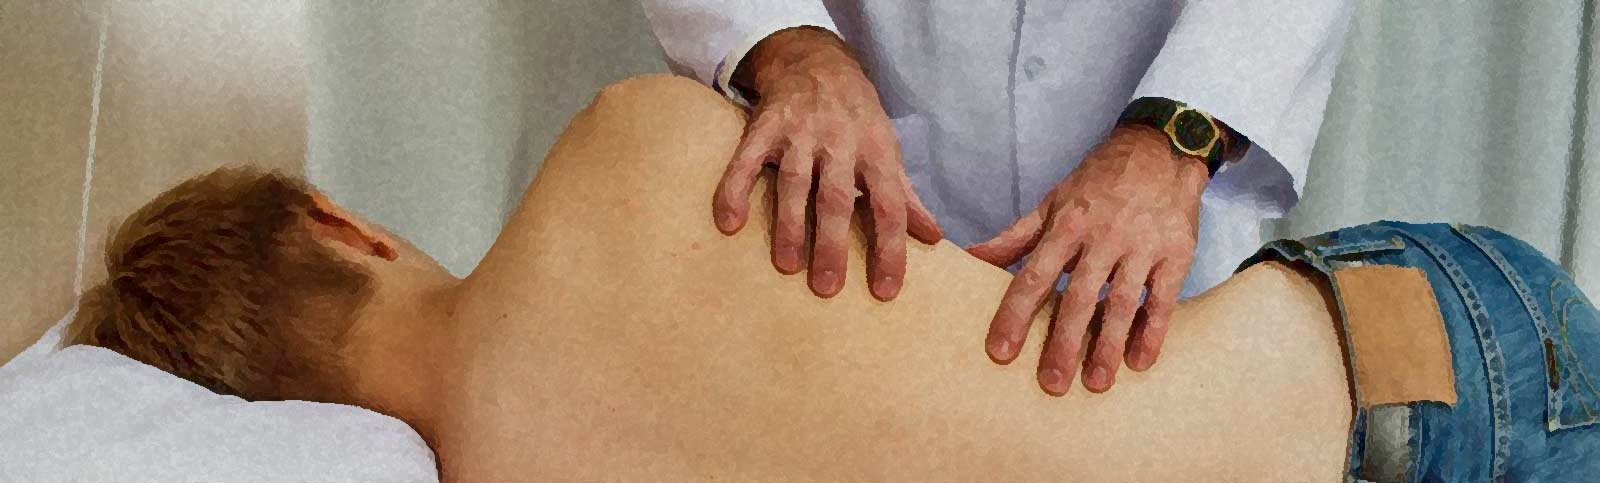 5 Unusual Benefits of Massage Therapy